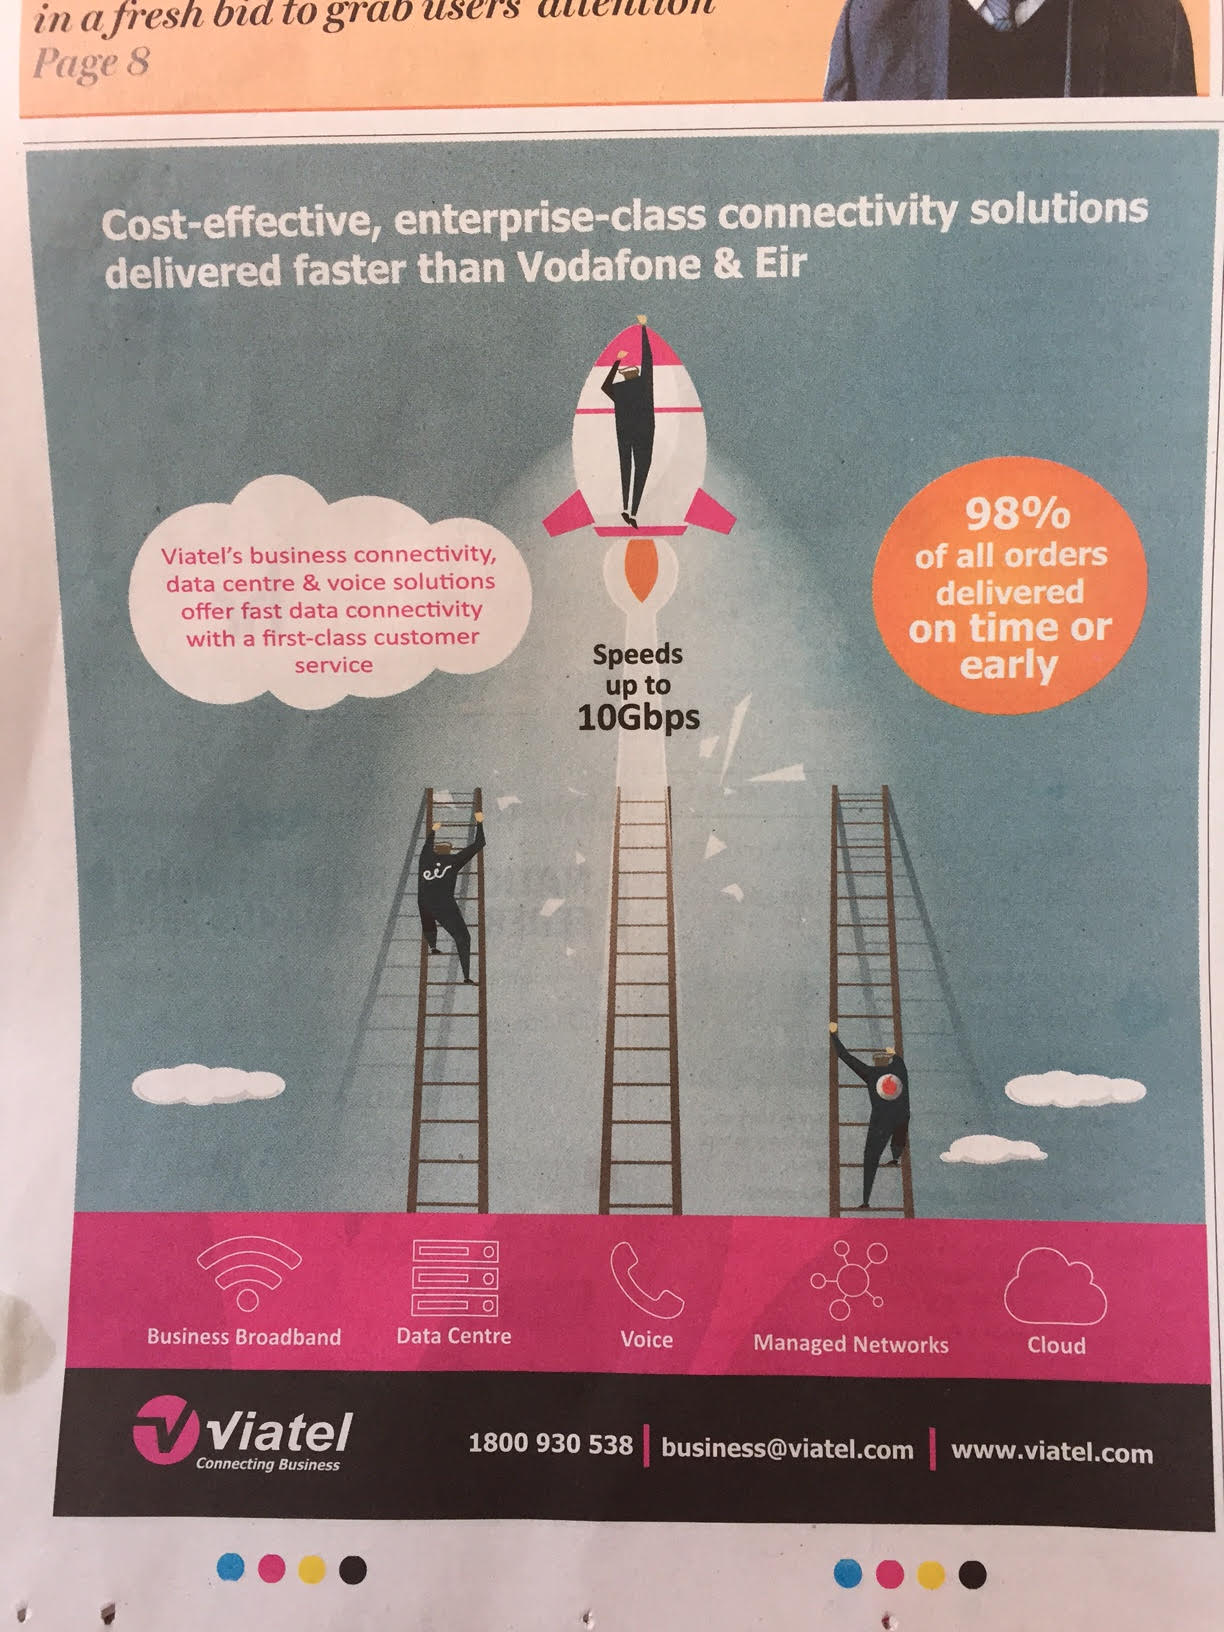 Viatel – cost-effective, enterprise-class connectivity solution delivered faster than Vodafone & Eir